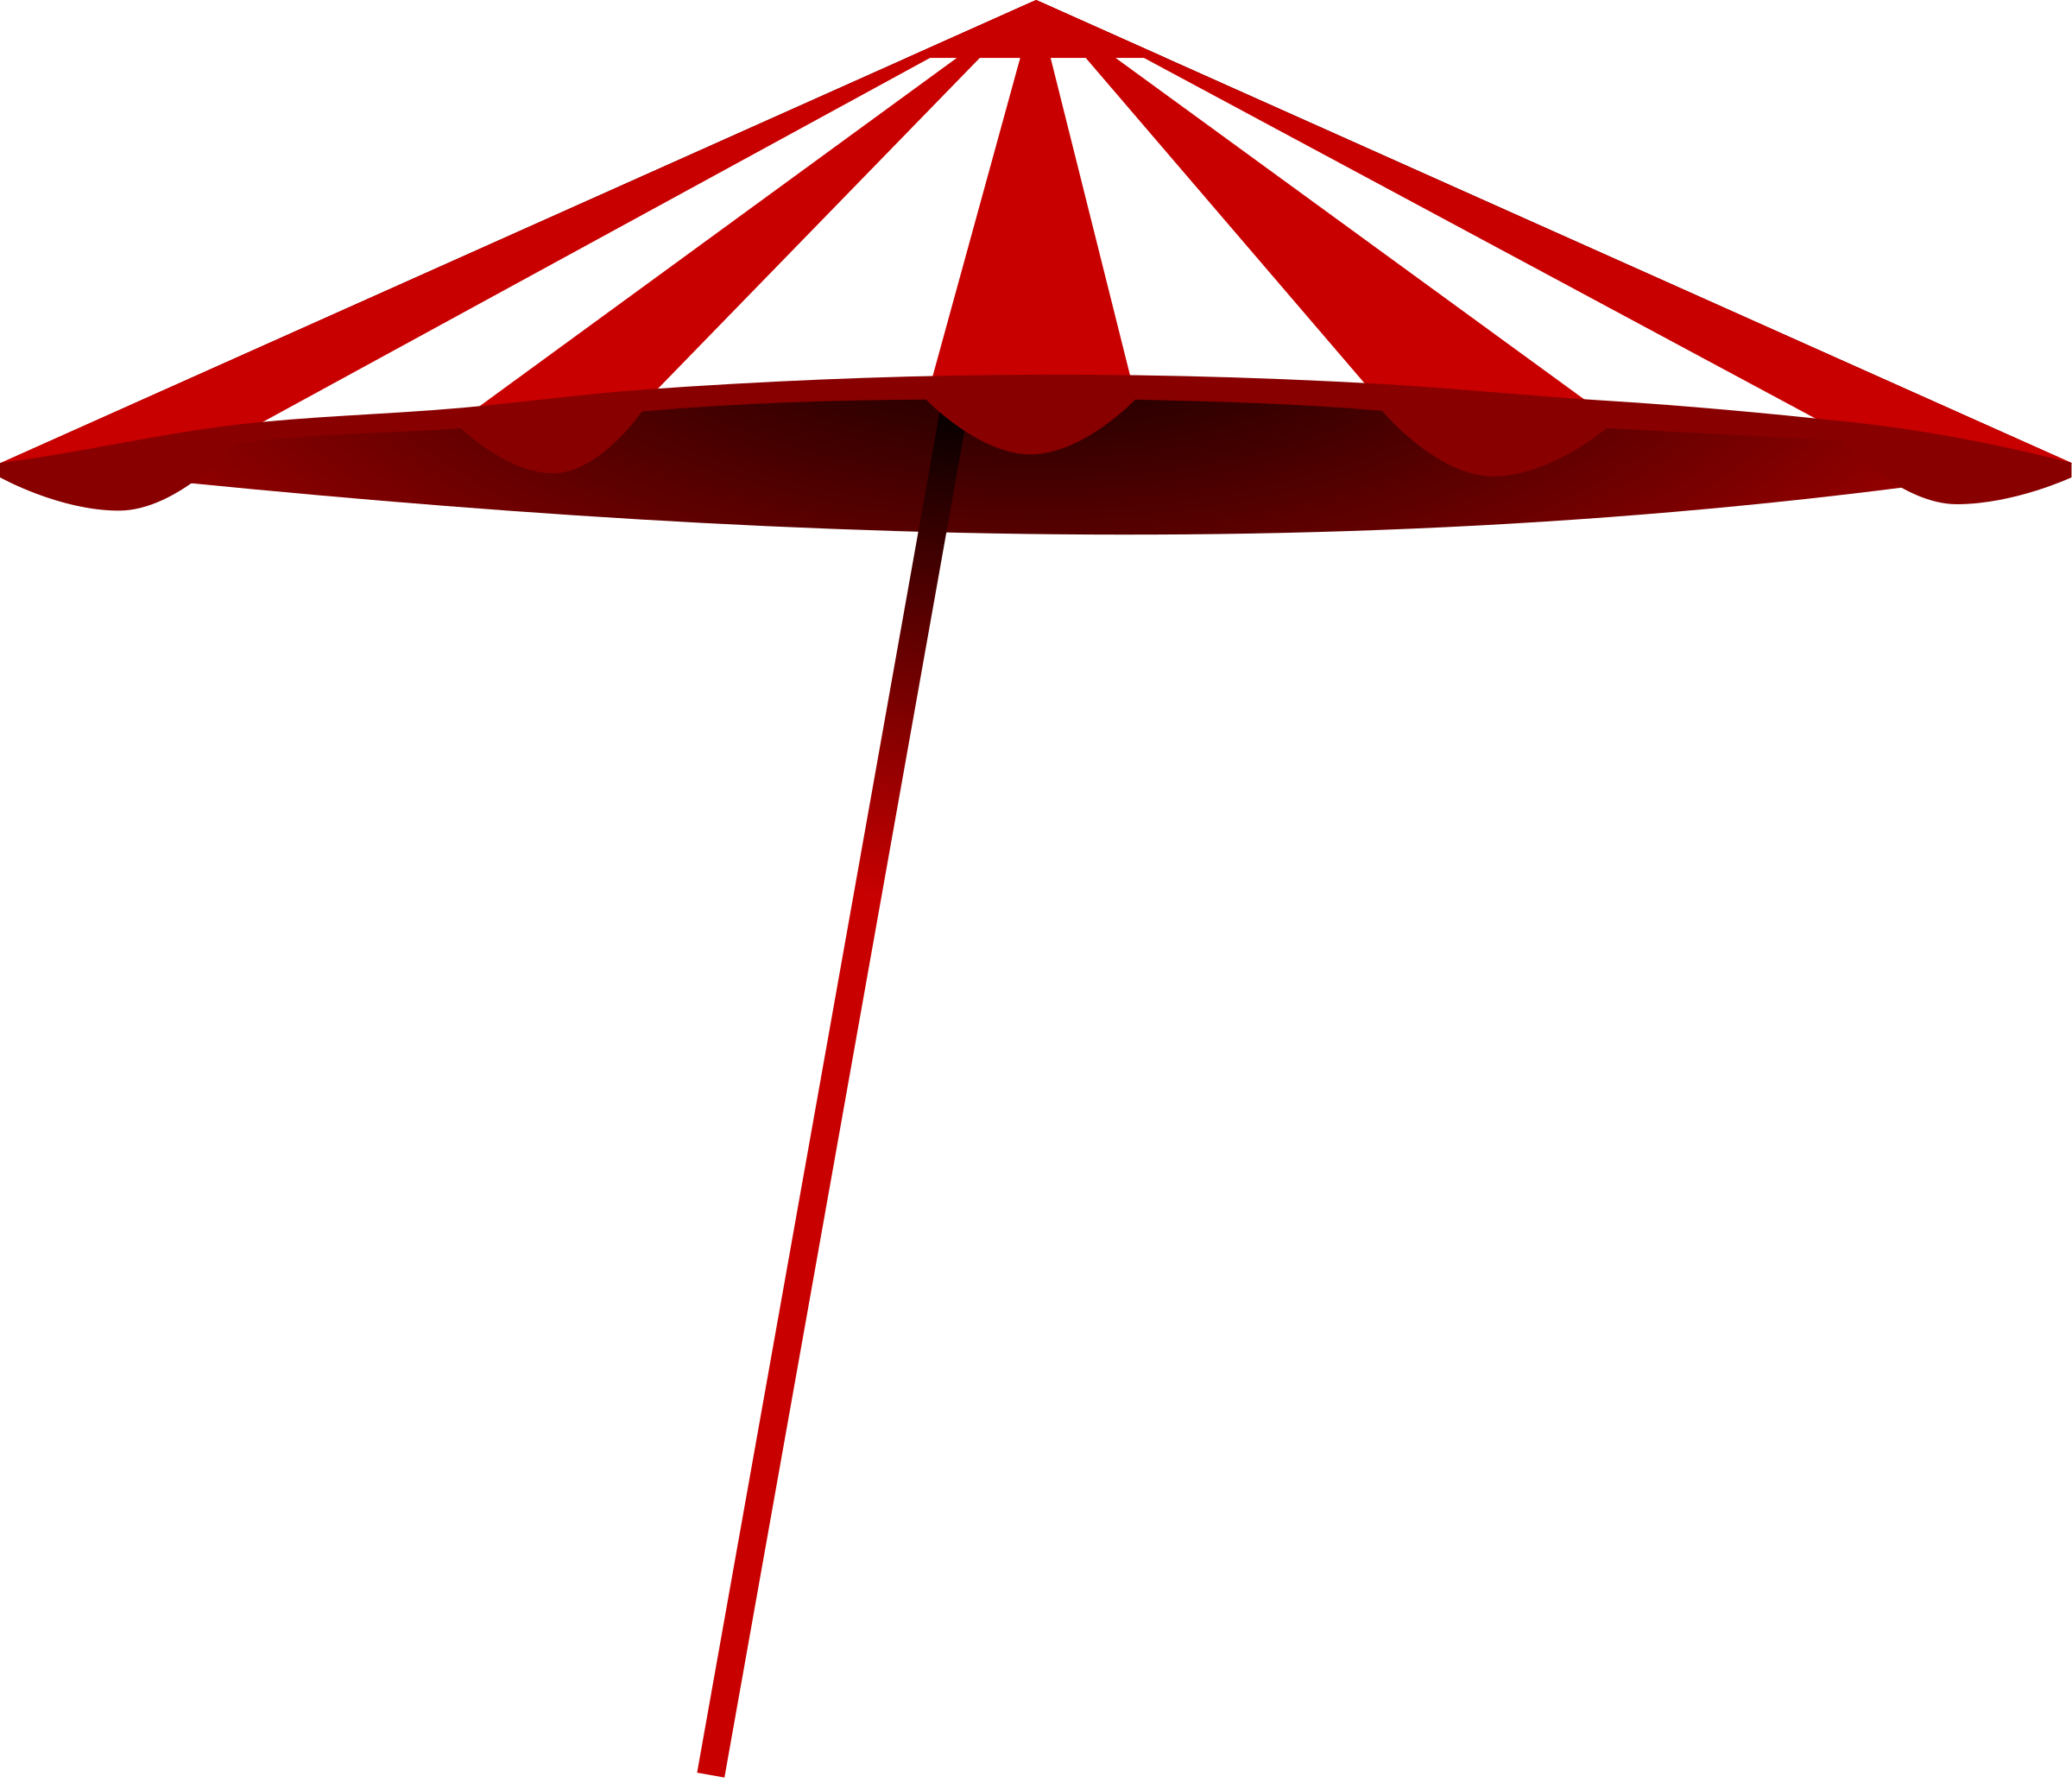 red-white umbrella by TomK32